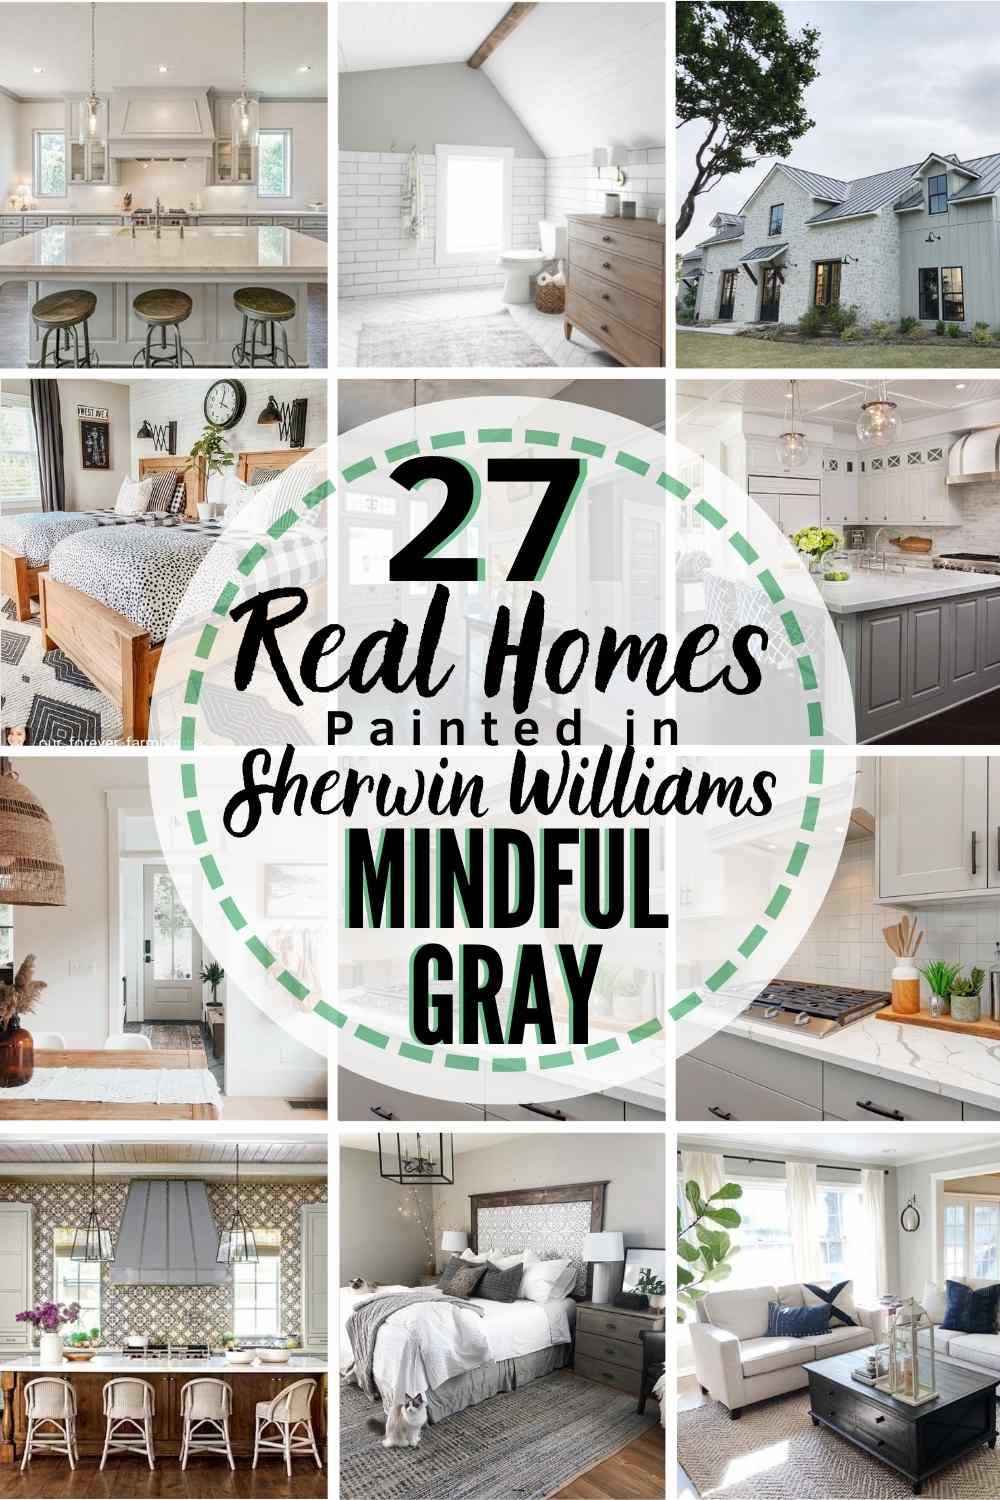 grid of 12 homes painted with Sherwin Williams Mindful Gray